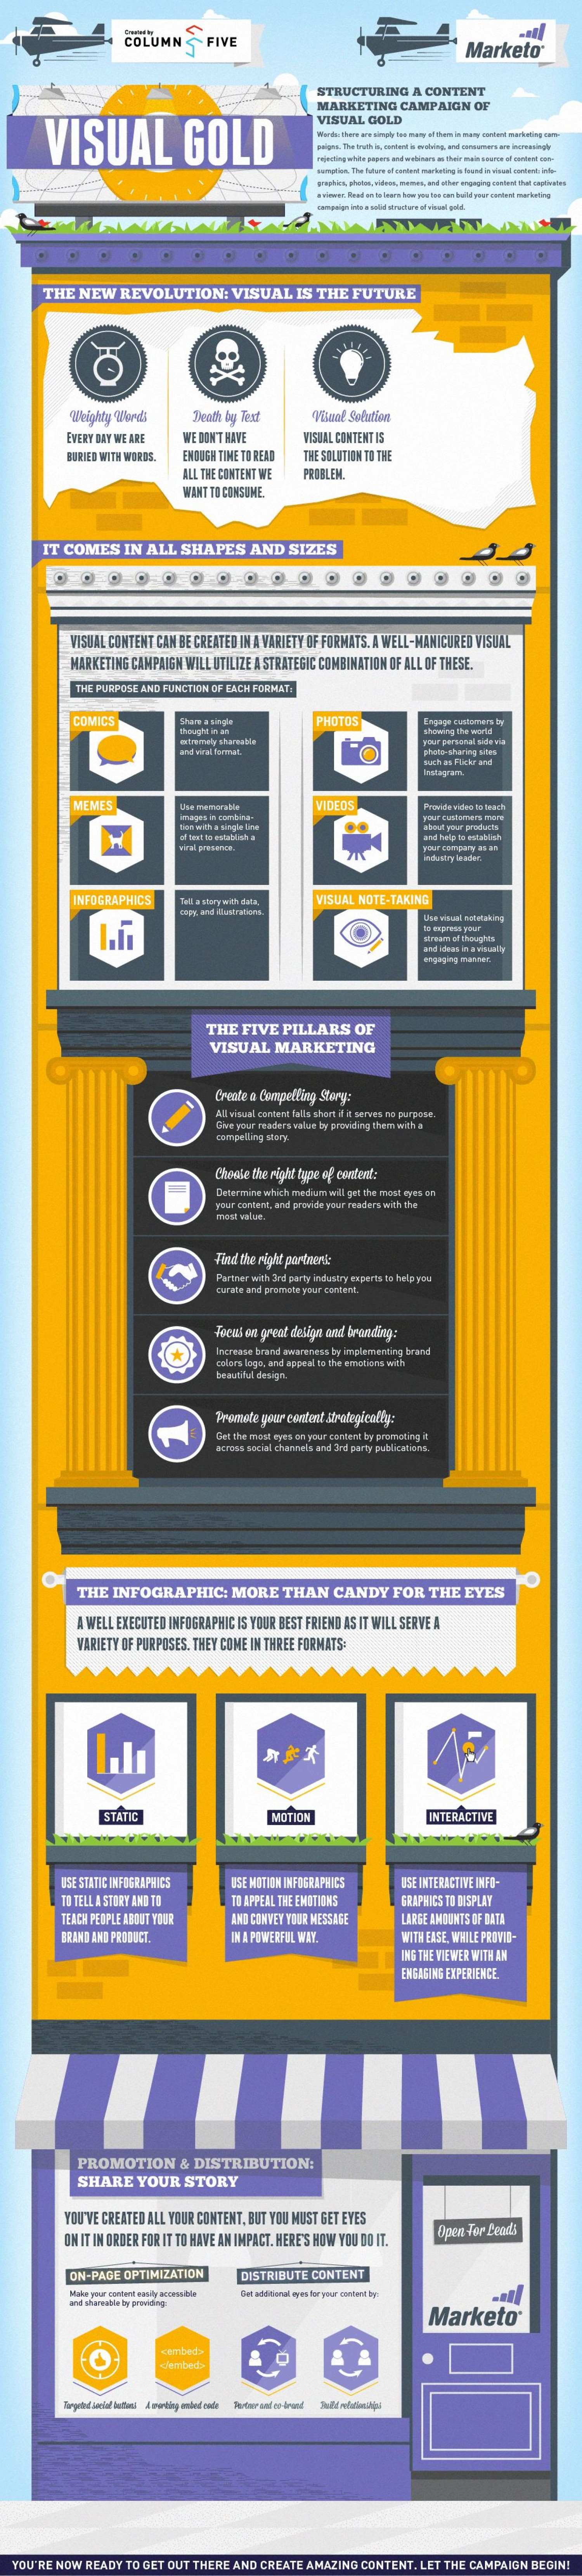 Visual Gold! The New Revolution of Content Marketing